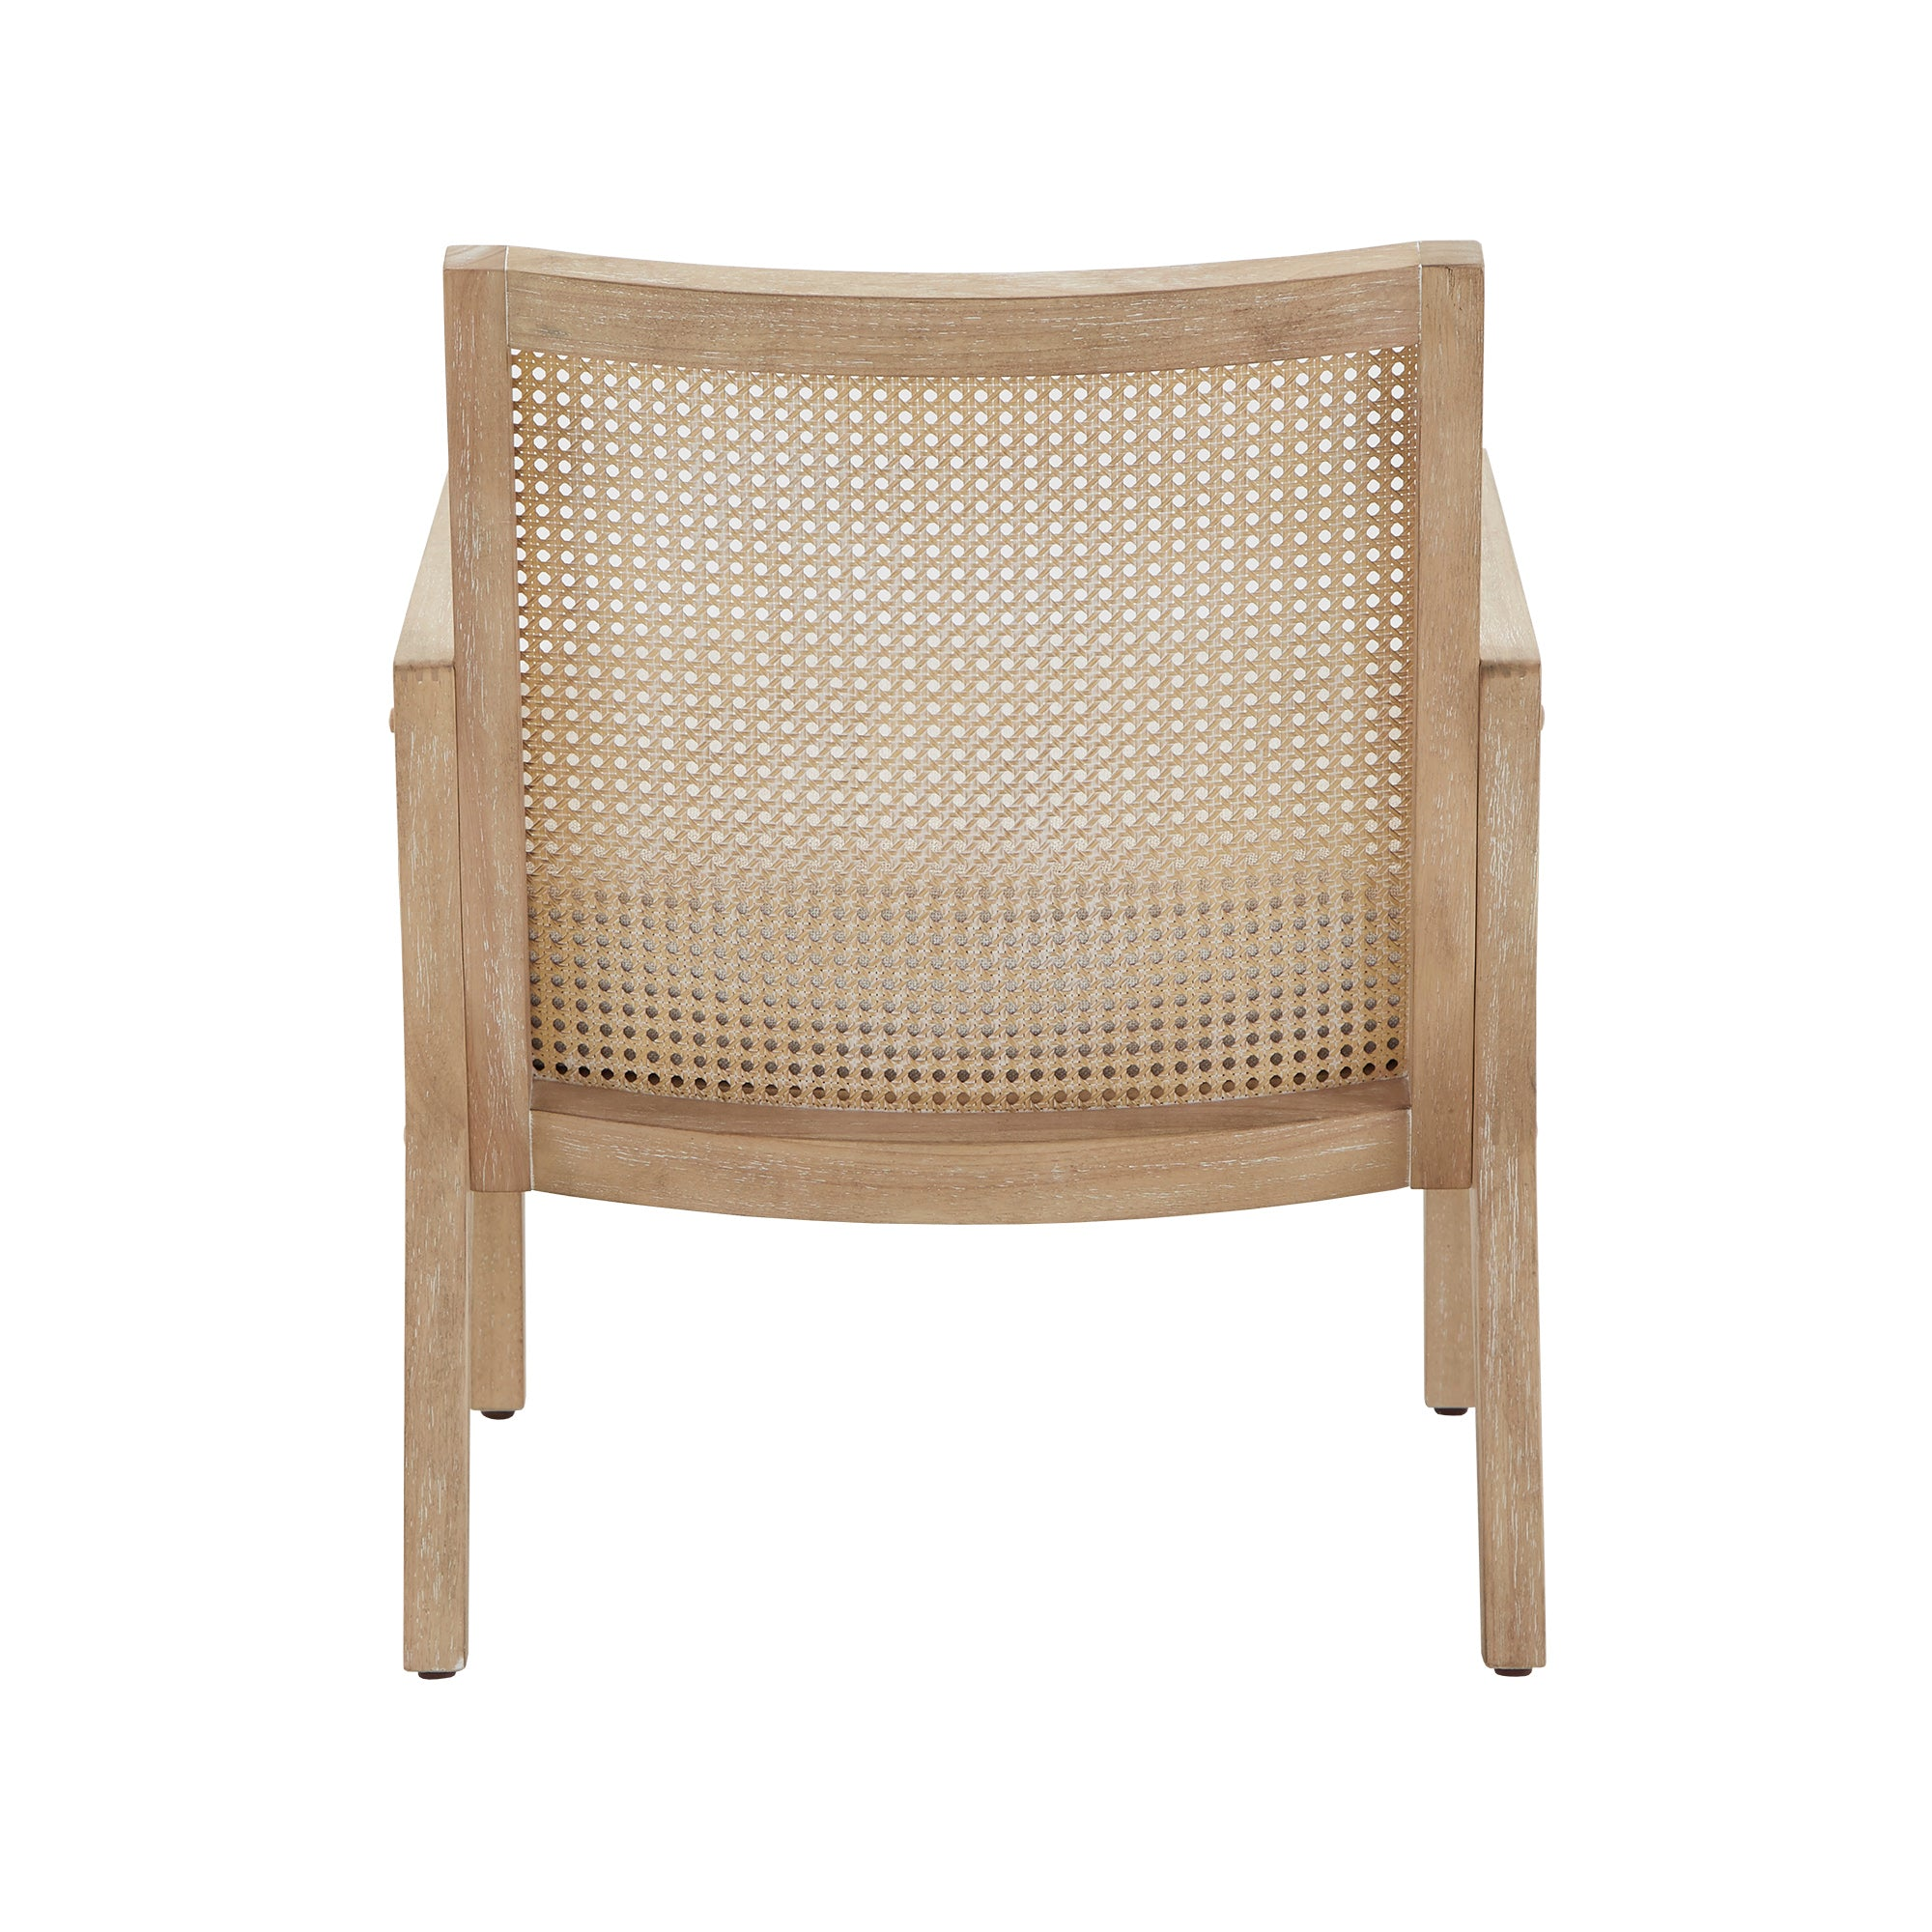 Natural Finish Fabric Cane Accent Chair